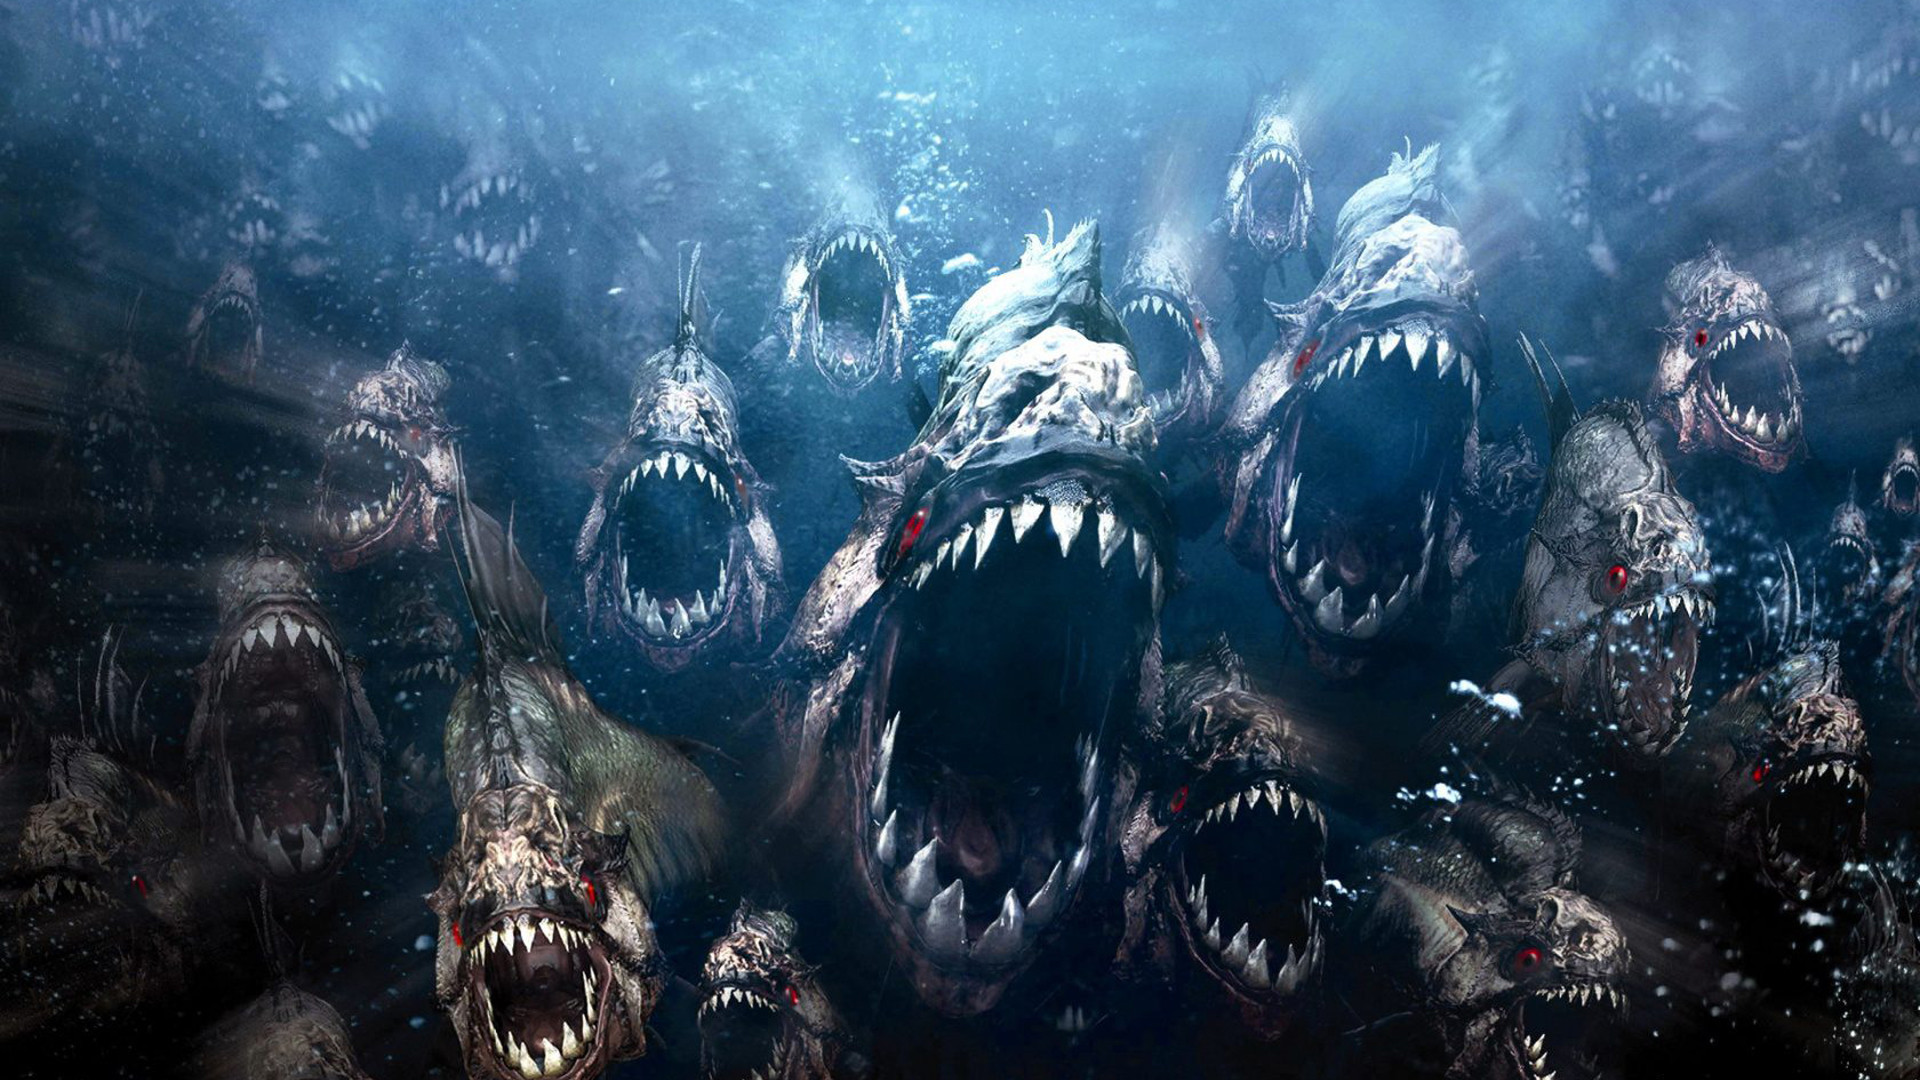 Piranha Movie Wallpaper 1920x1080